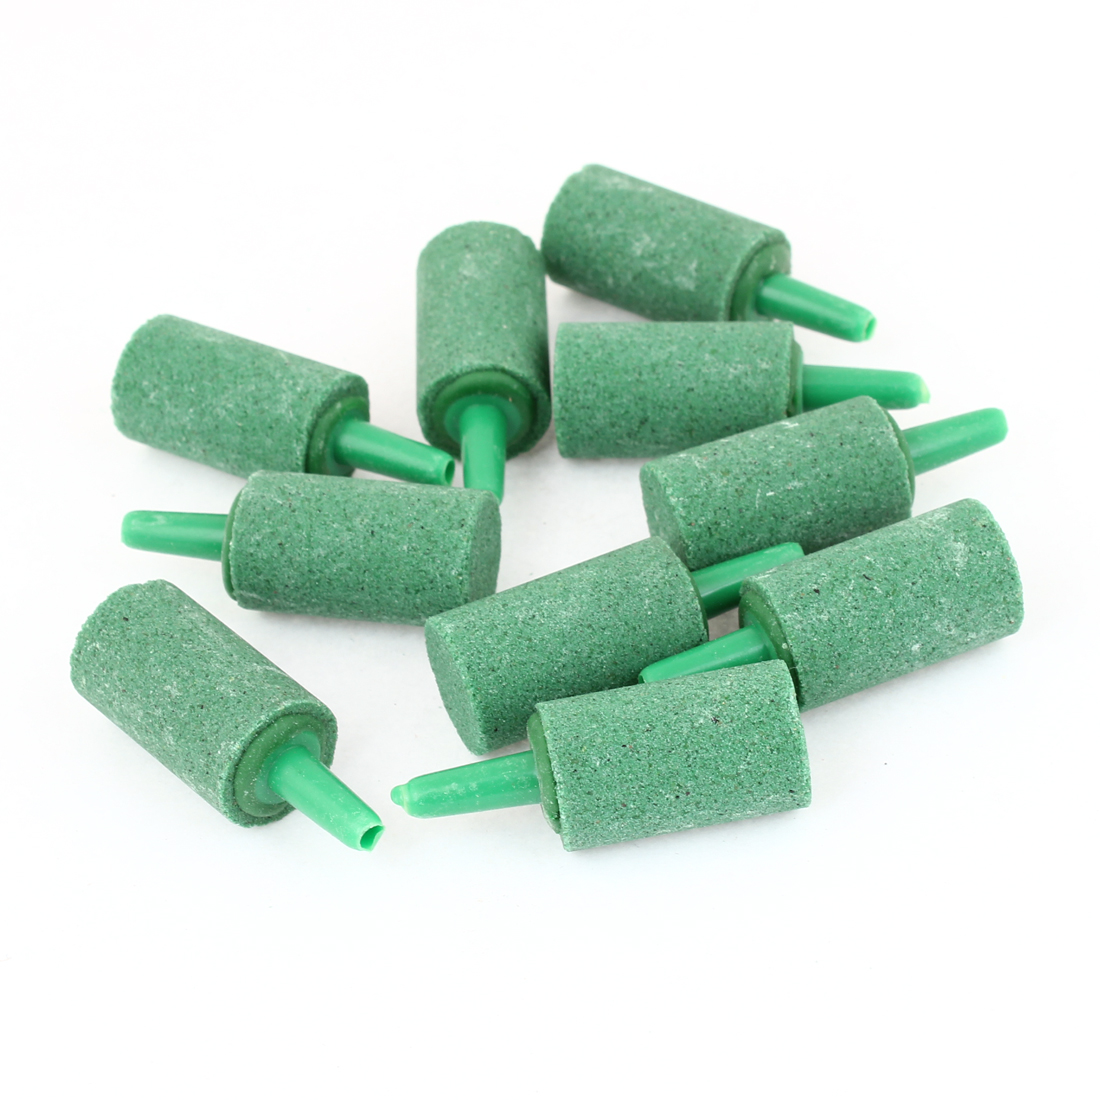 10 Pcs Green 15mm x 27mm Cylinder Mini Bubble Air Stone for Aquarium